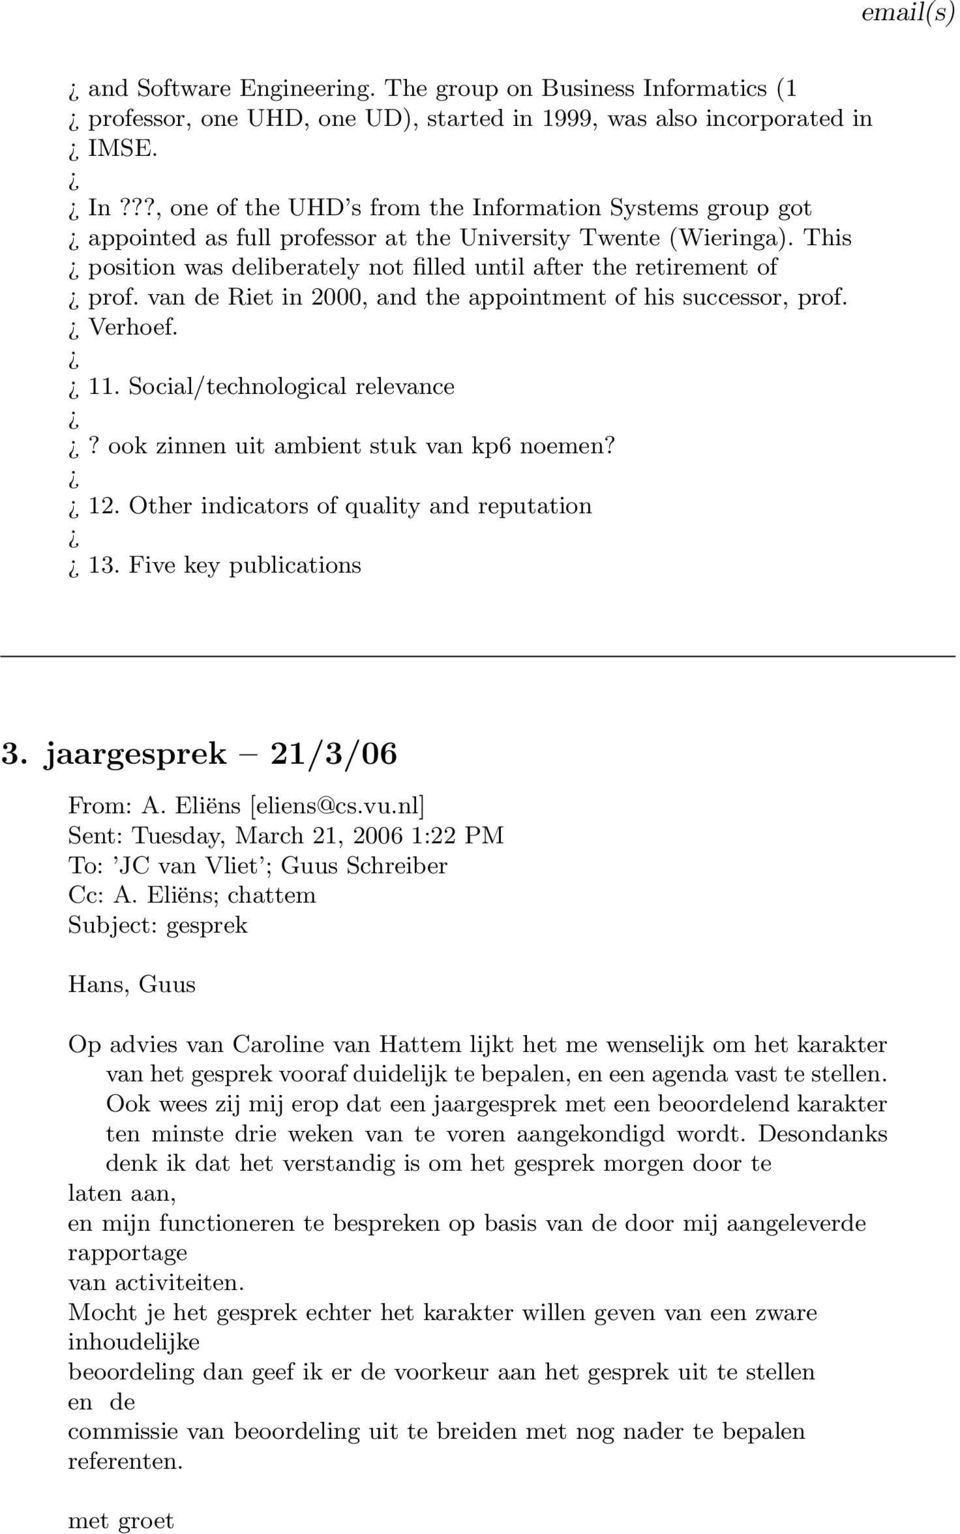 ook zinnen uit ambient stuk van kp6 noemen? 12. Other indicators of quality and reputation 13. Five key publications 3. jaargesprek 21/3/06 From: A. Eliëns [eliens@cs.vu.